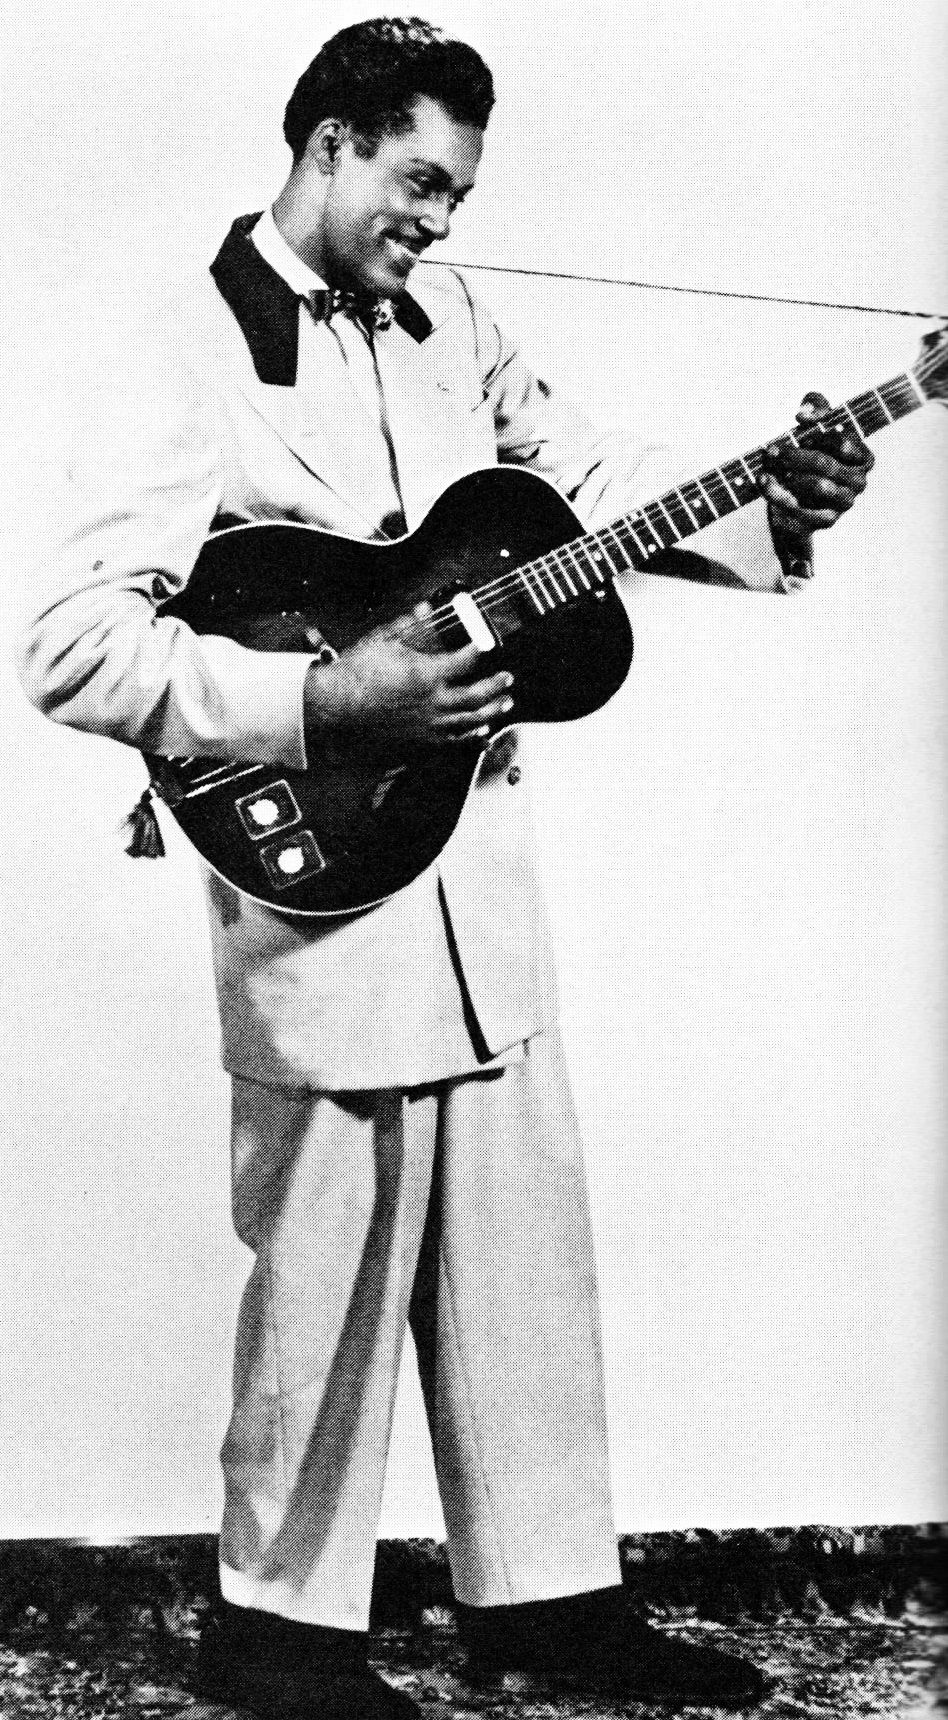 updownsmilefrown: Chuck Berry c  1950s | Music is a Religion | Guitarras